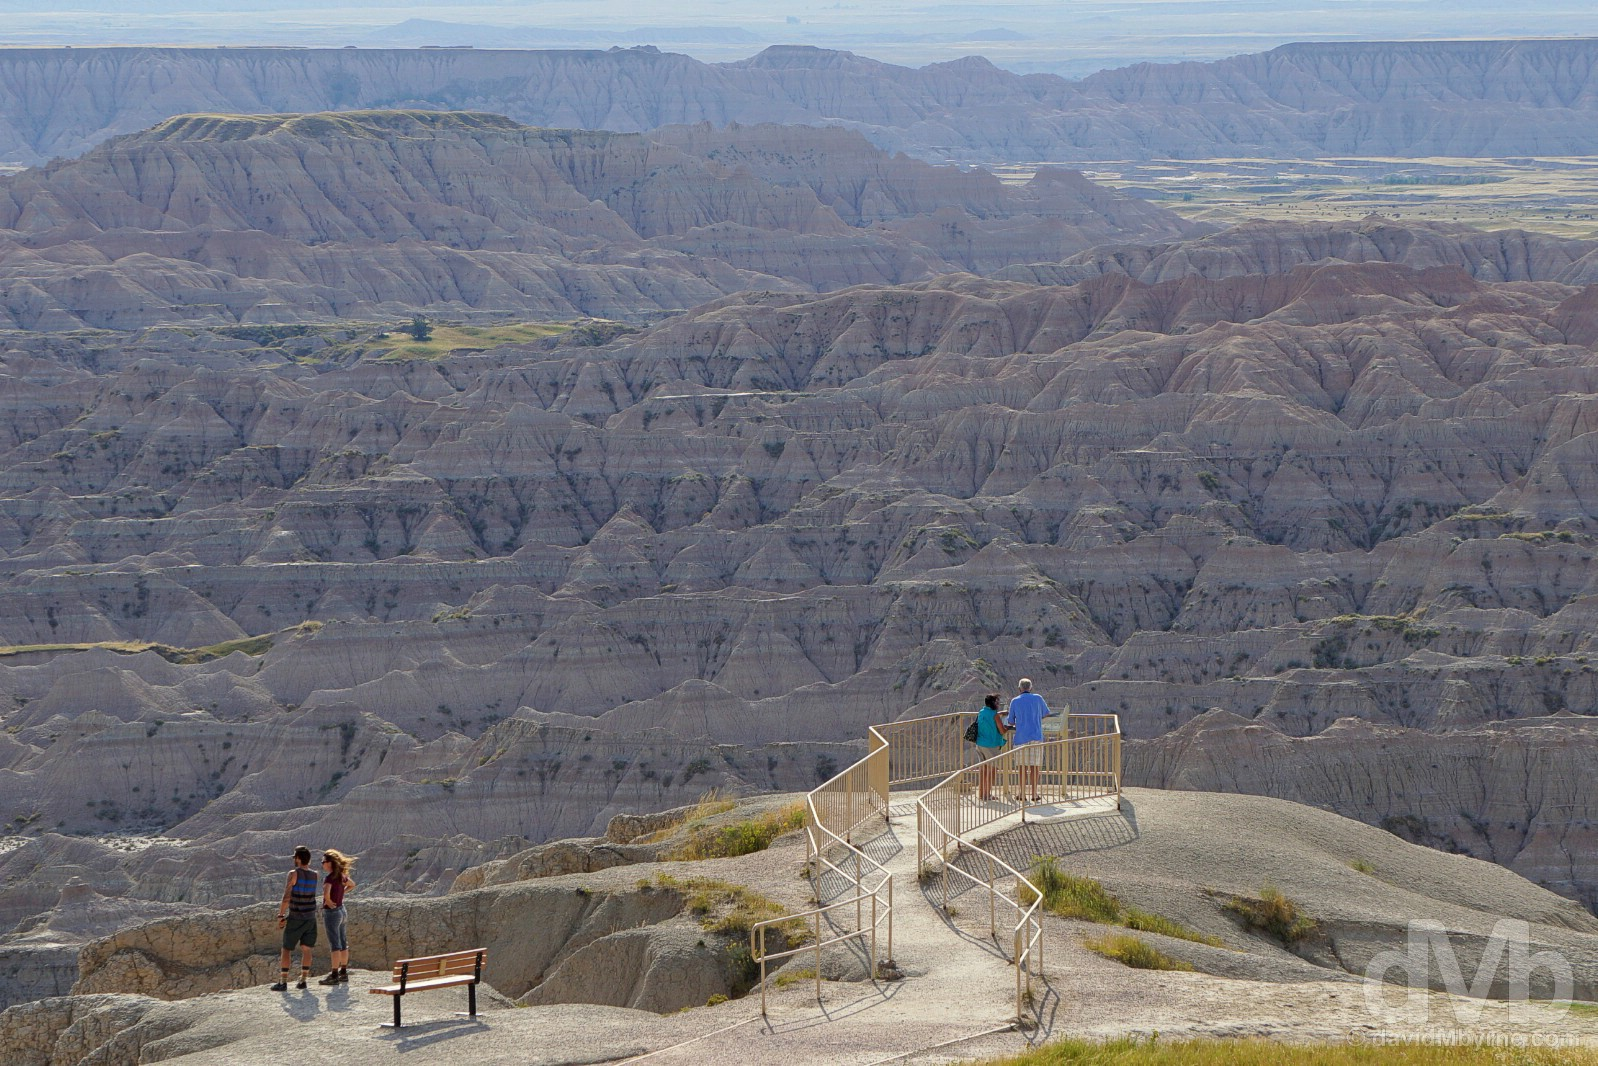 Overlooking the Badlands in Bandlands National Park, South Dakota, USA. September 1, 2016.